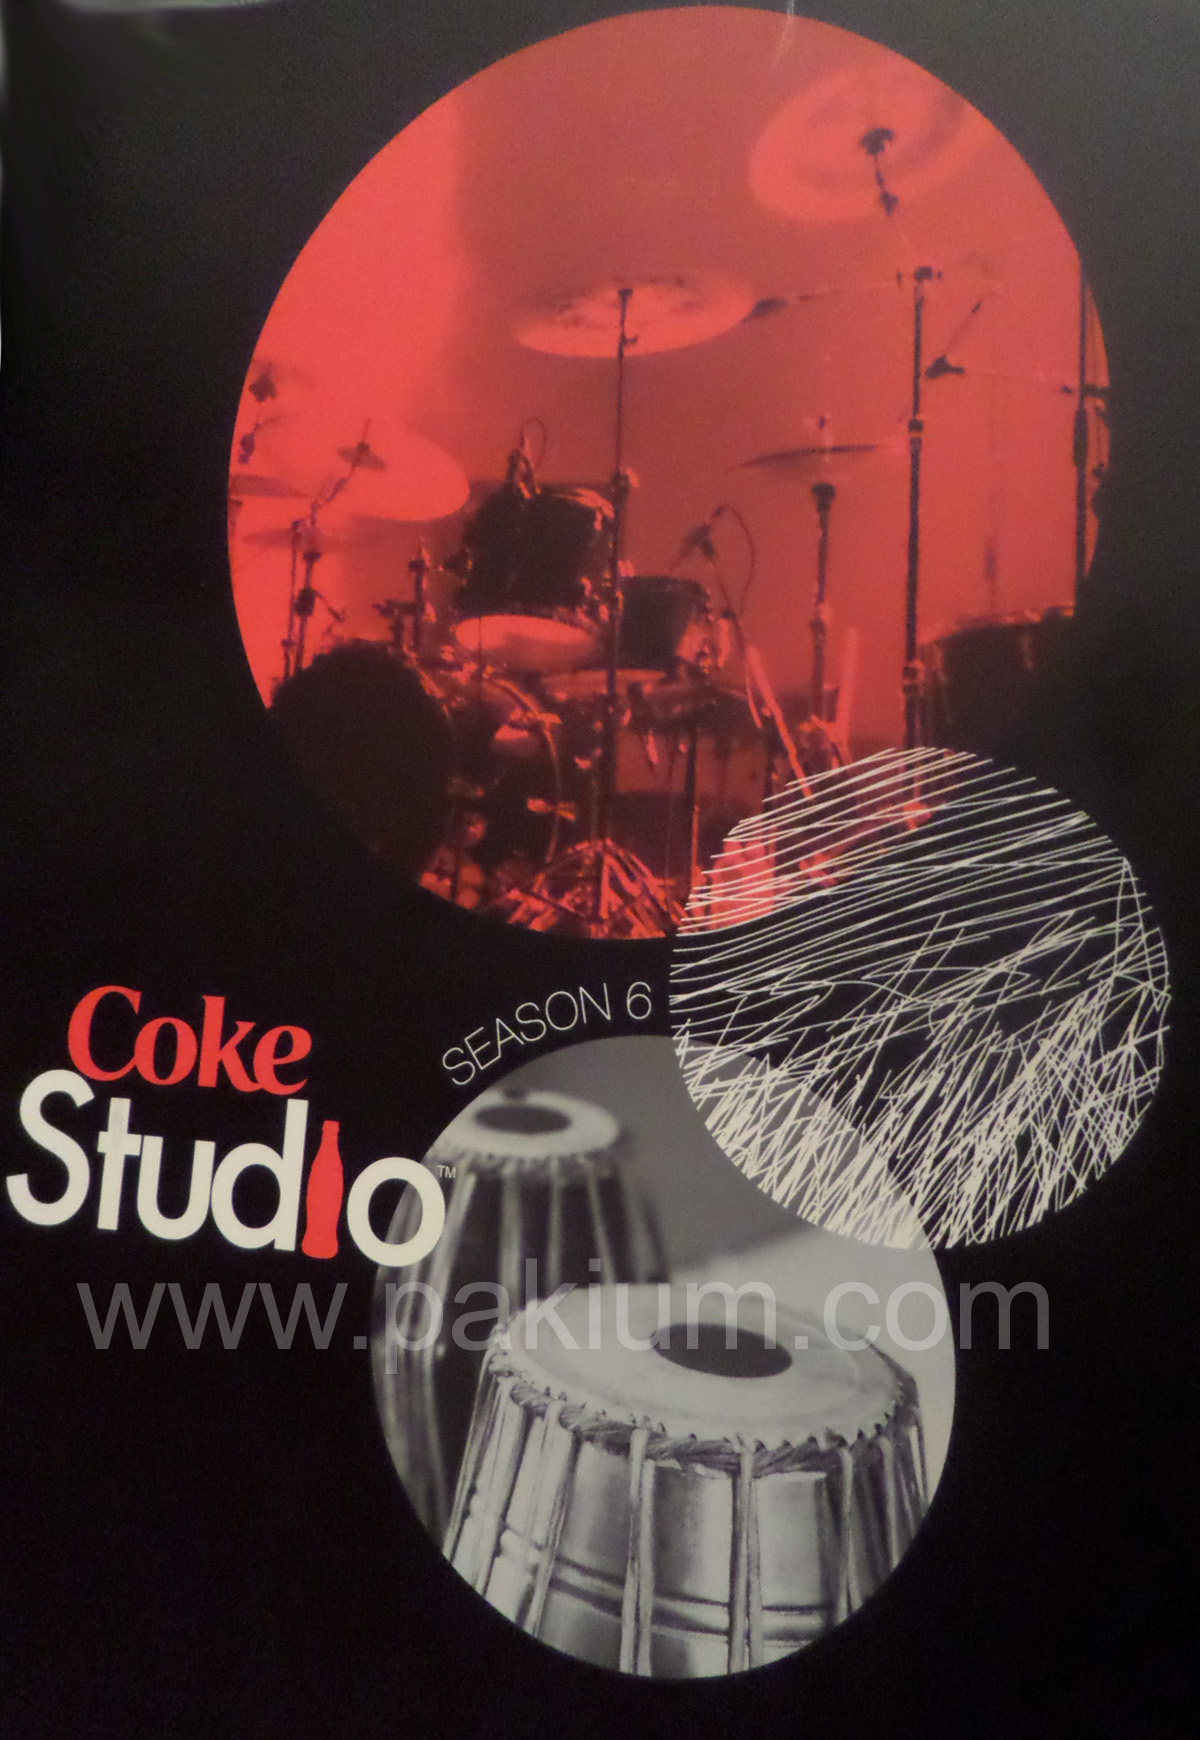 coke studio 6 season